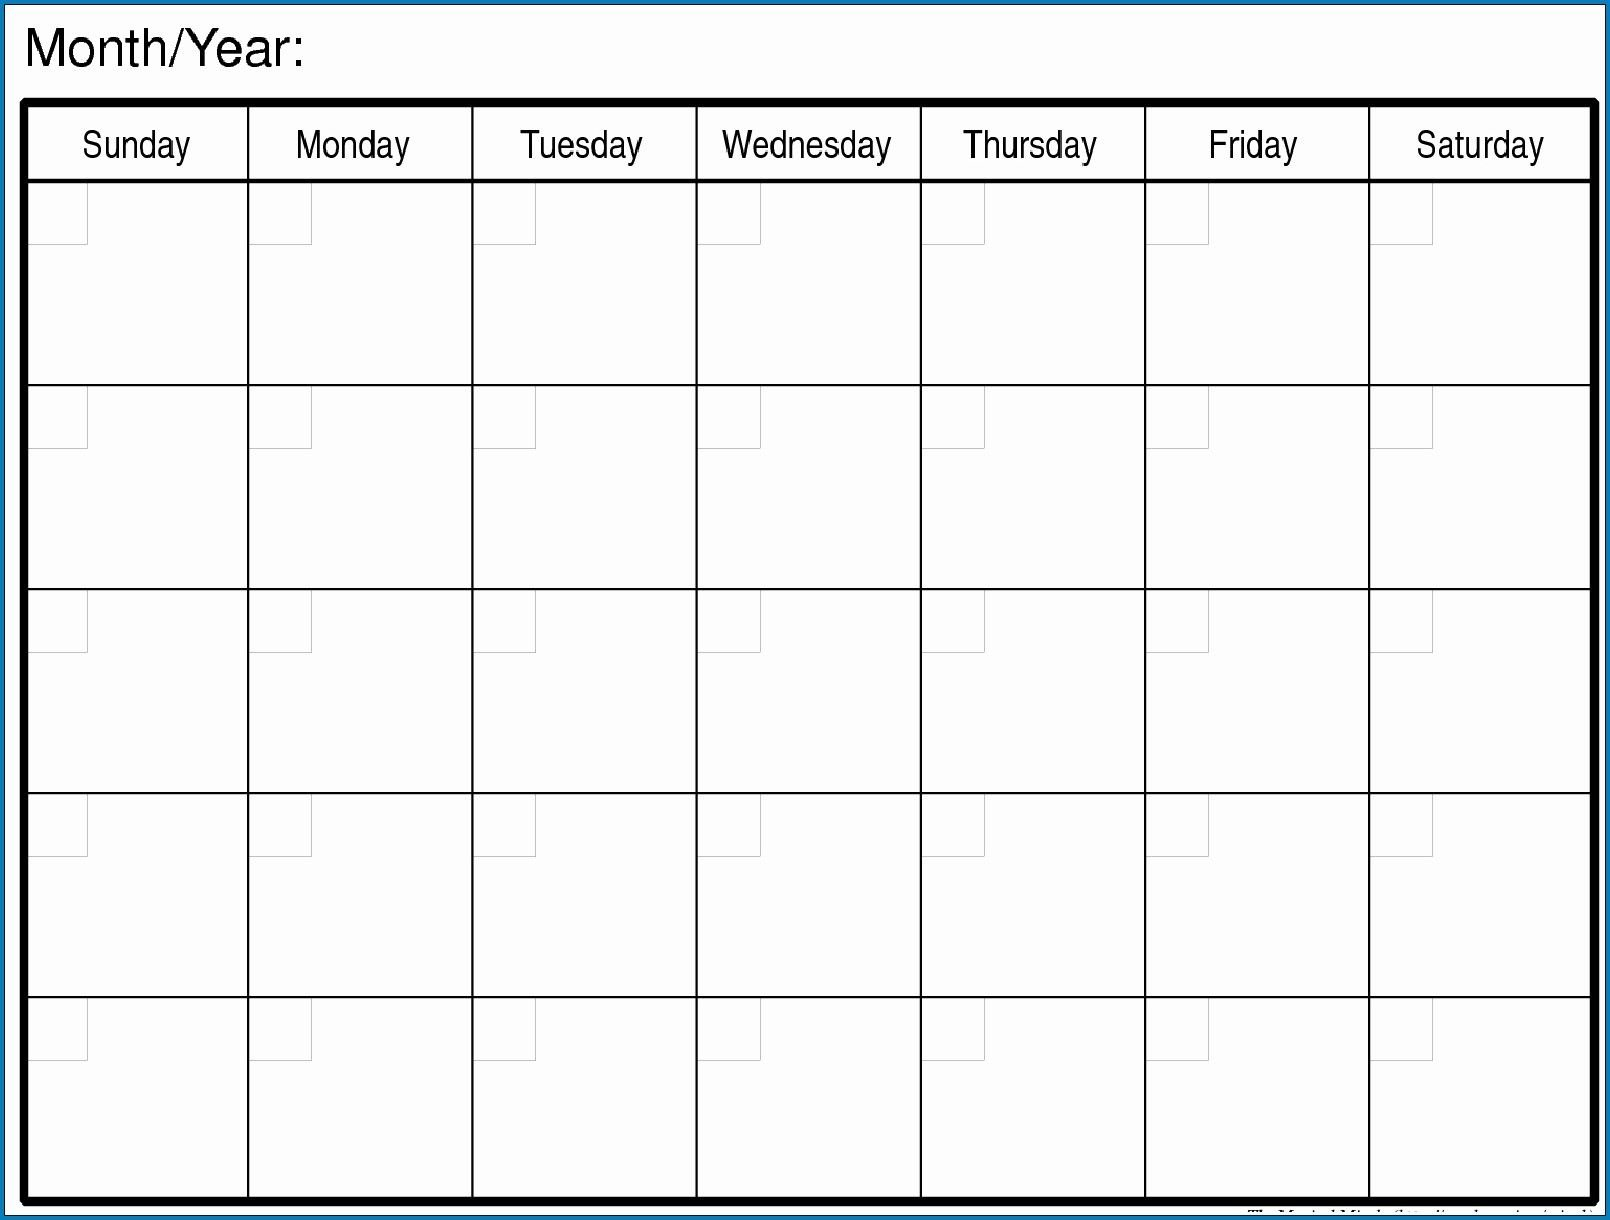 How To Printable Monday Through Friday Monthly Calendar Monday Through Friday Calendar Monthly